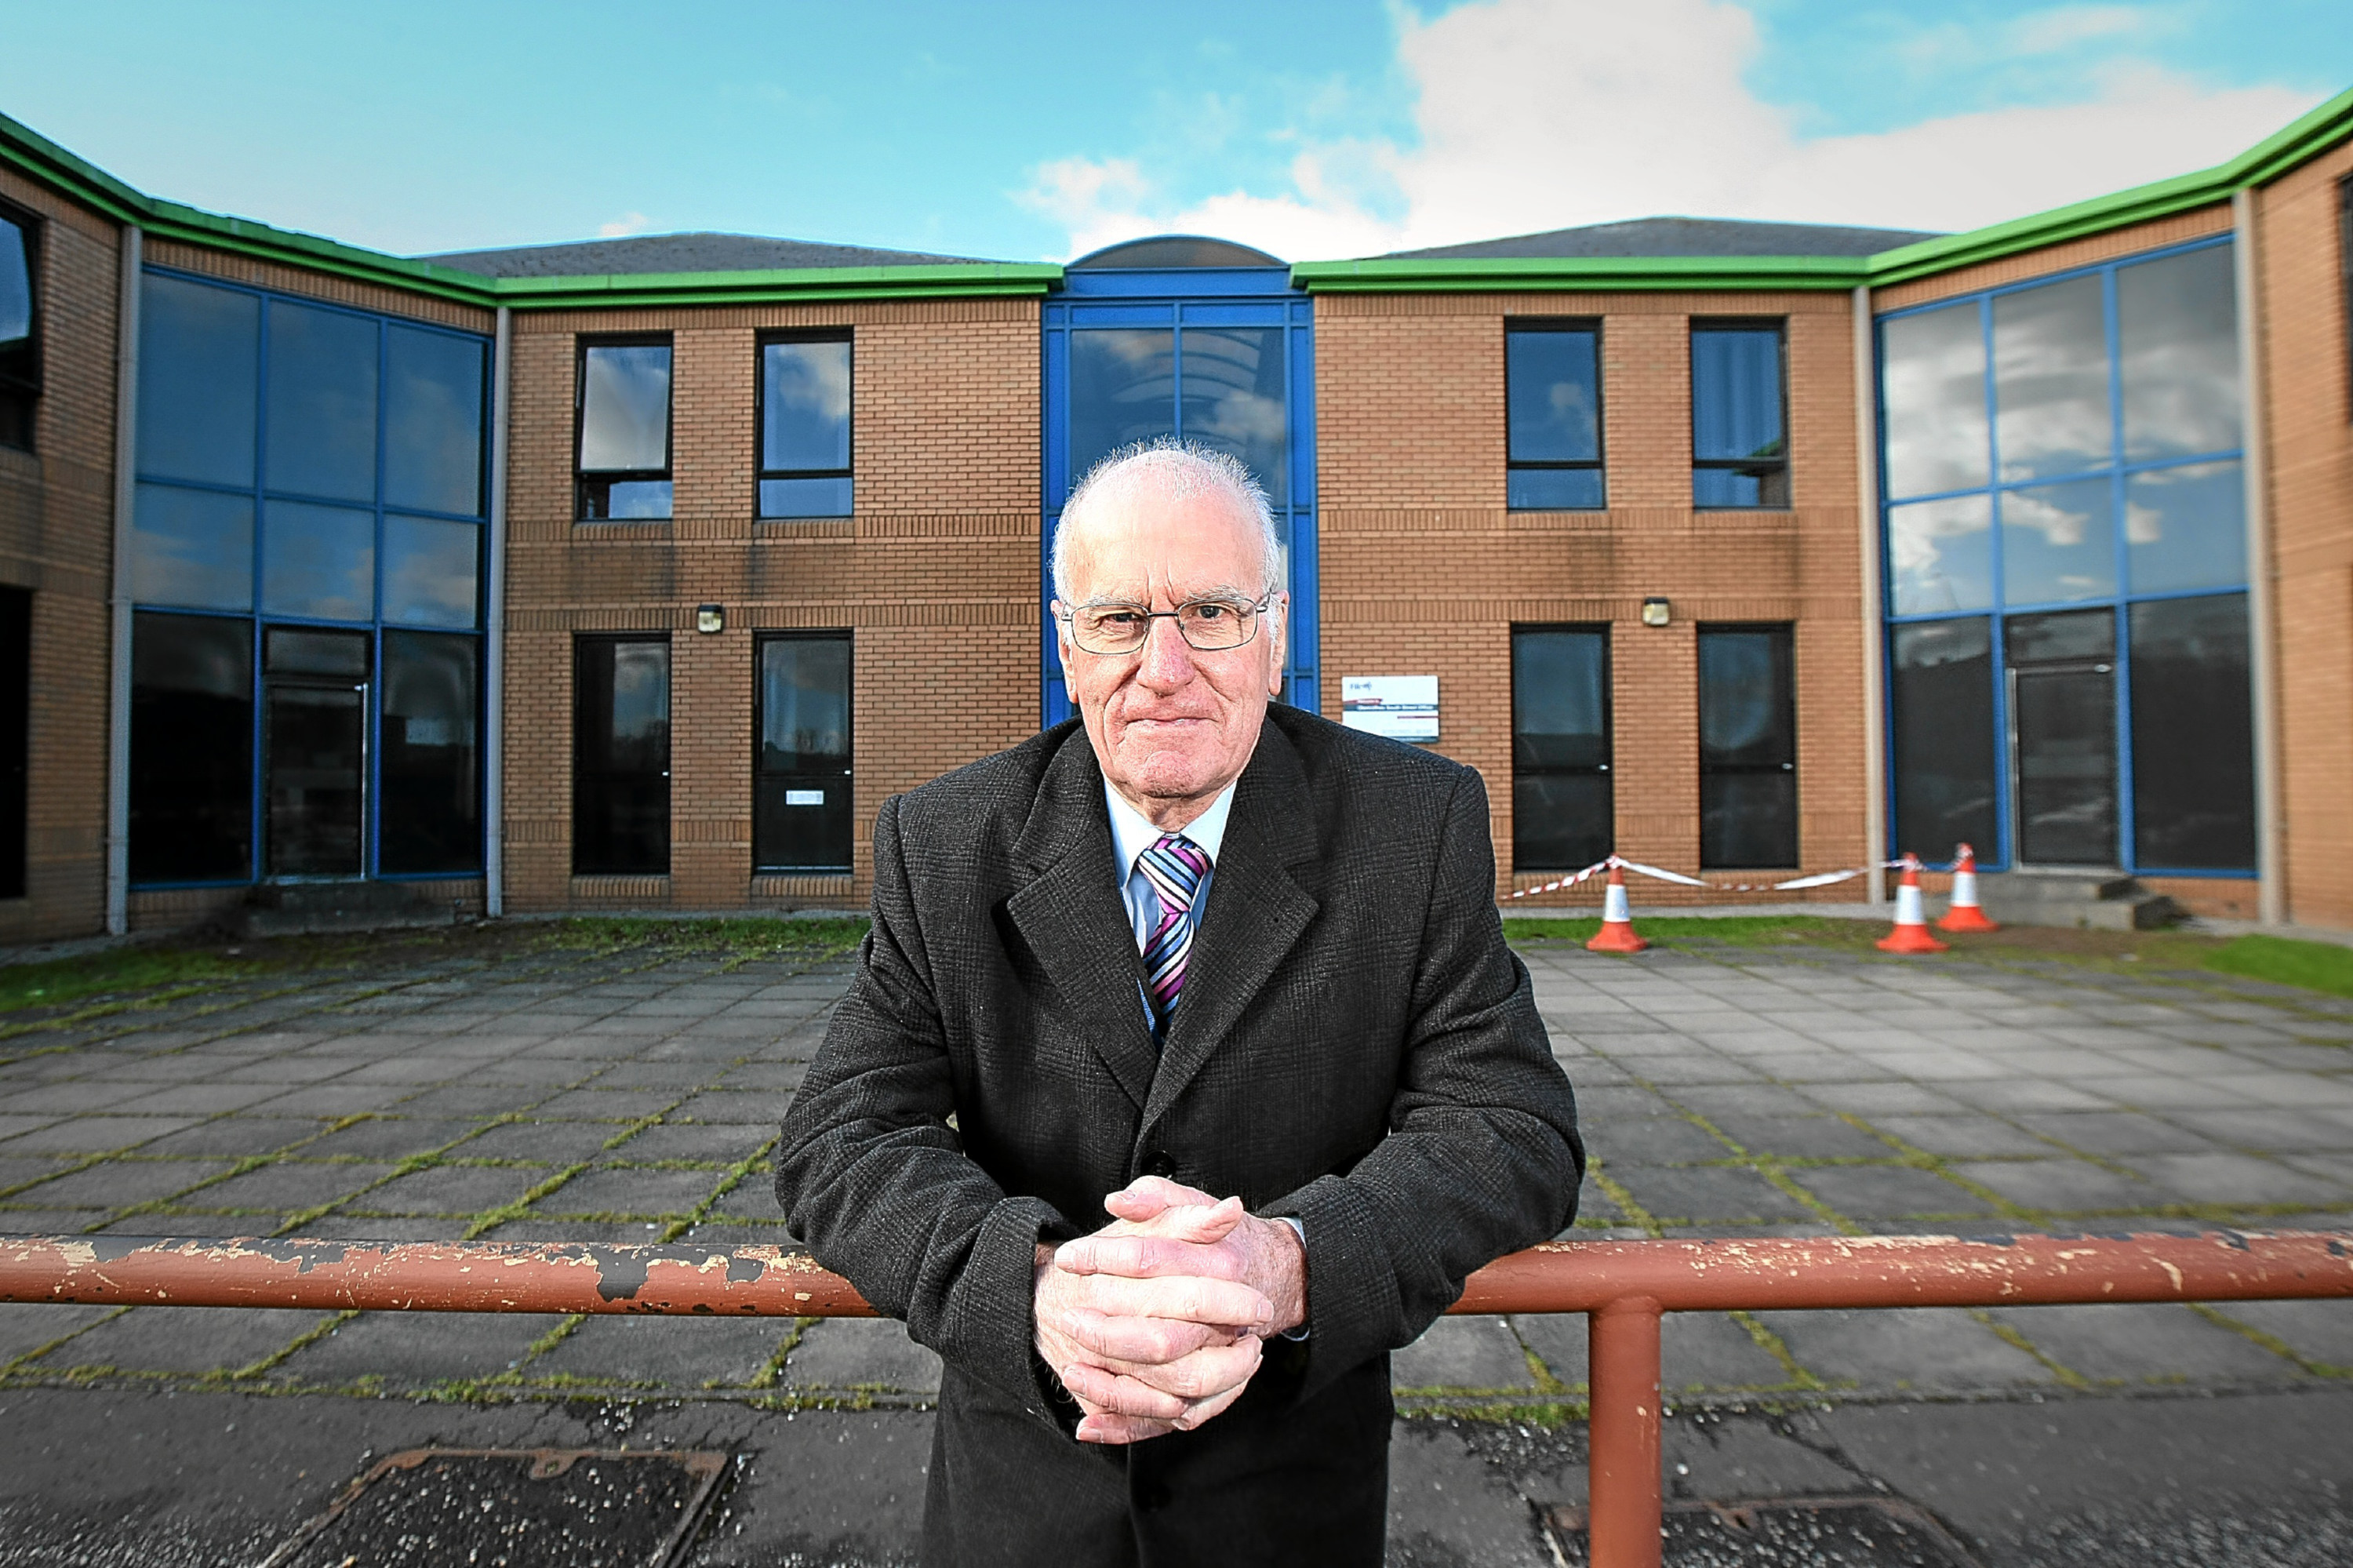 Councillor Ross Vettraino outside Fife Council's former social work building on South Street. CISWO social club is moving to social work building as part of a town centre regeneration project.